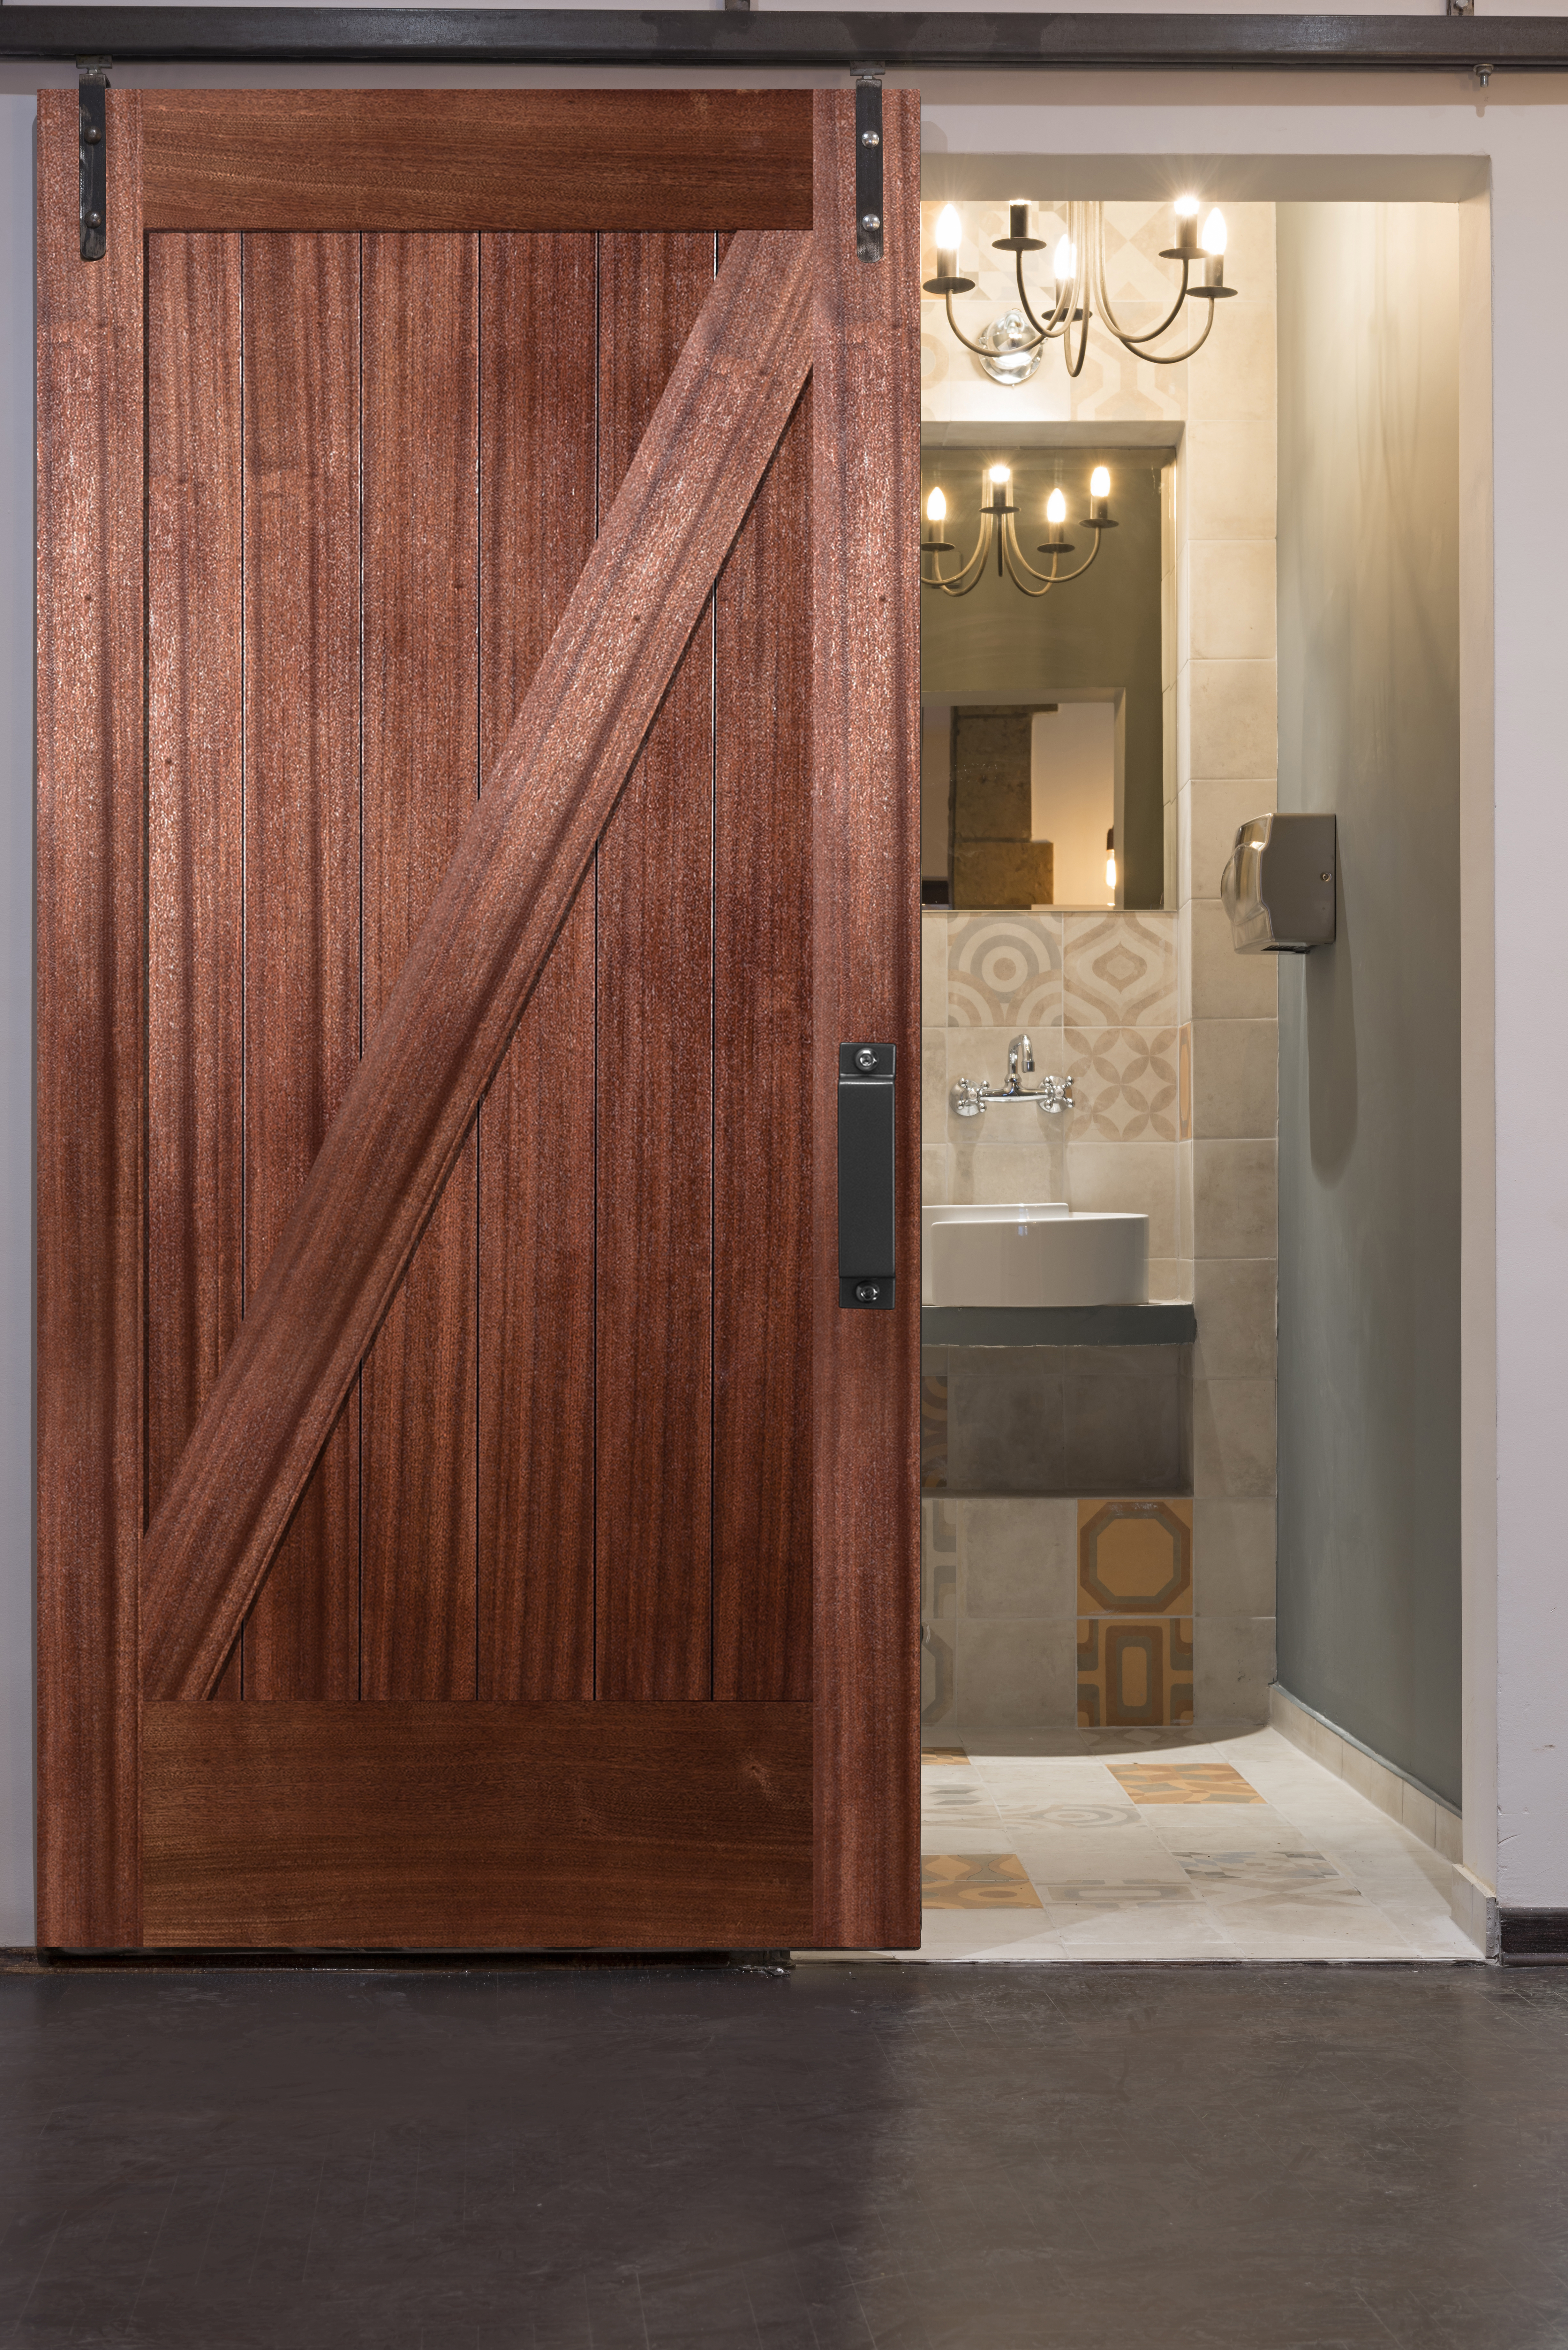 Simpson Doors Meeting Demand For Barn Doors Hardware For Residential Pros